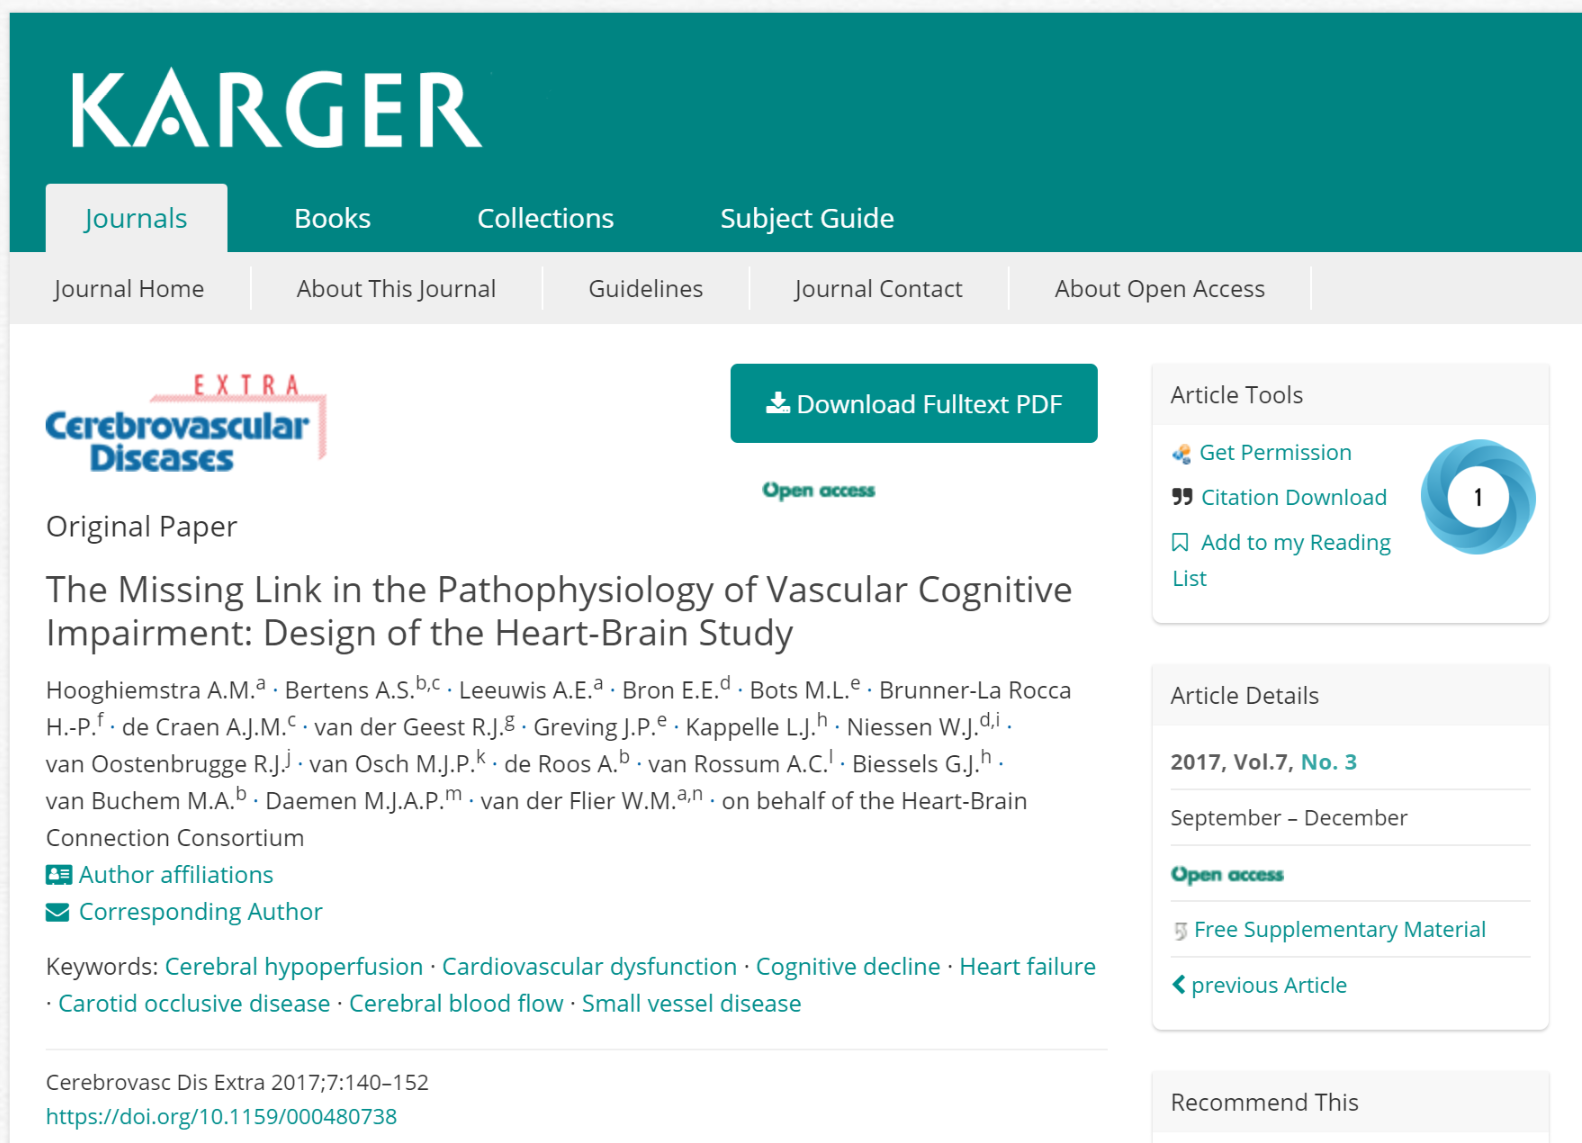 Heart-Brain Connection design paper published